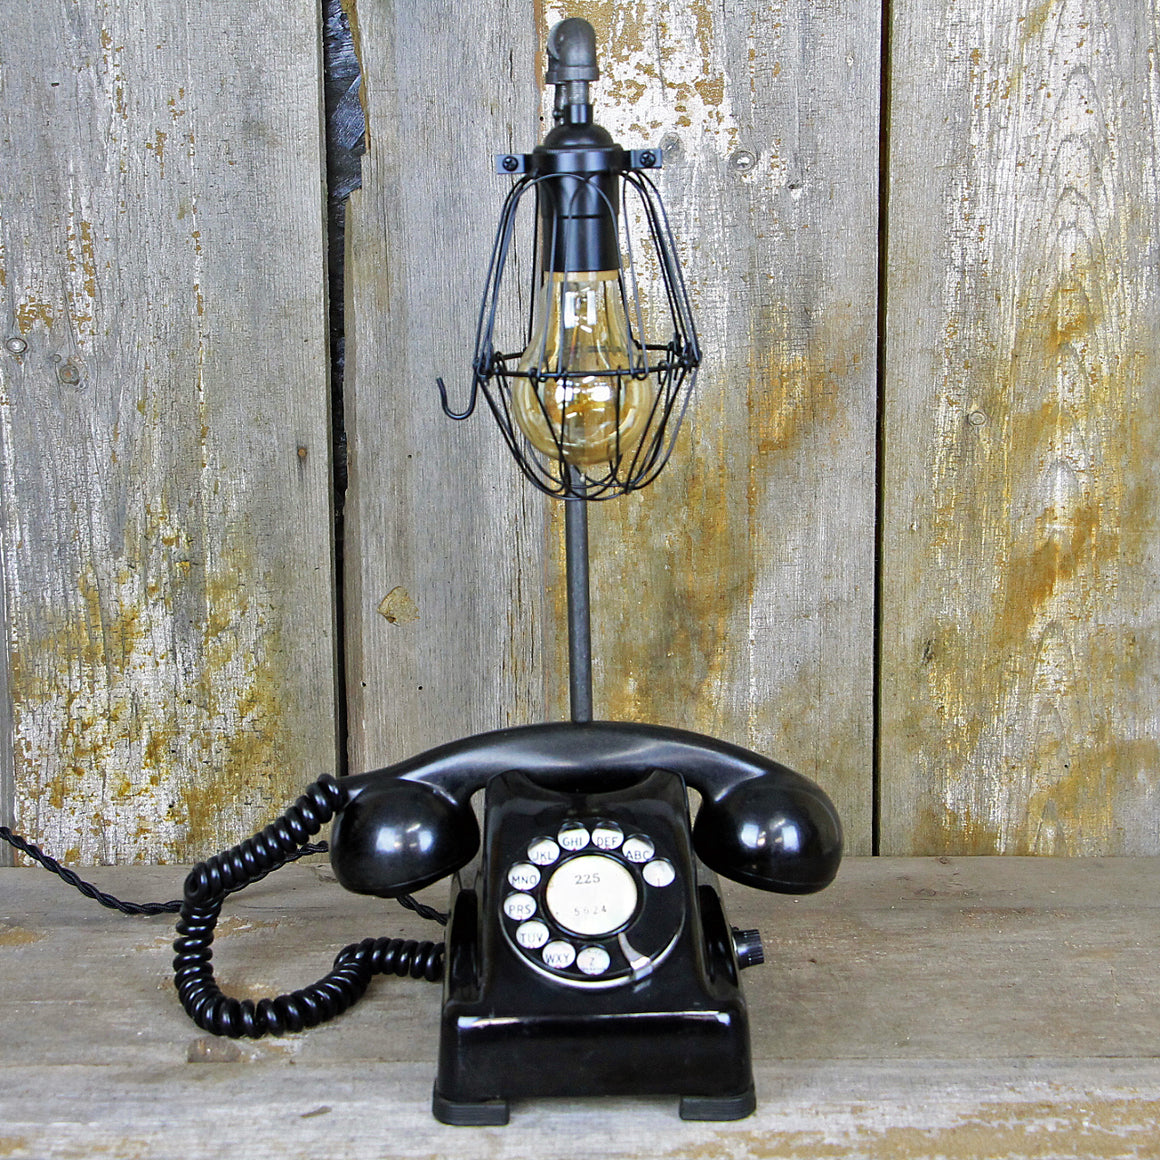 Vintage Art Deco Telephone Lamp #295 - The Lighting Works